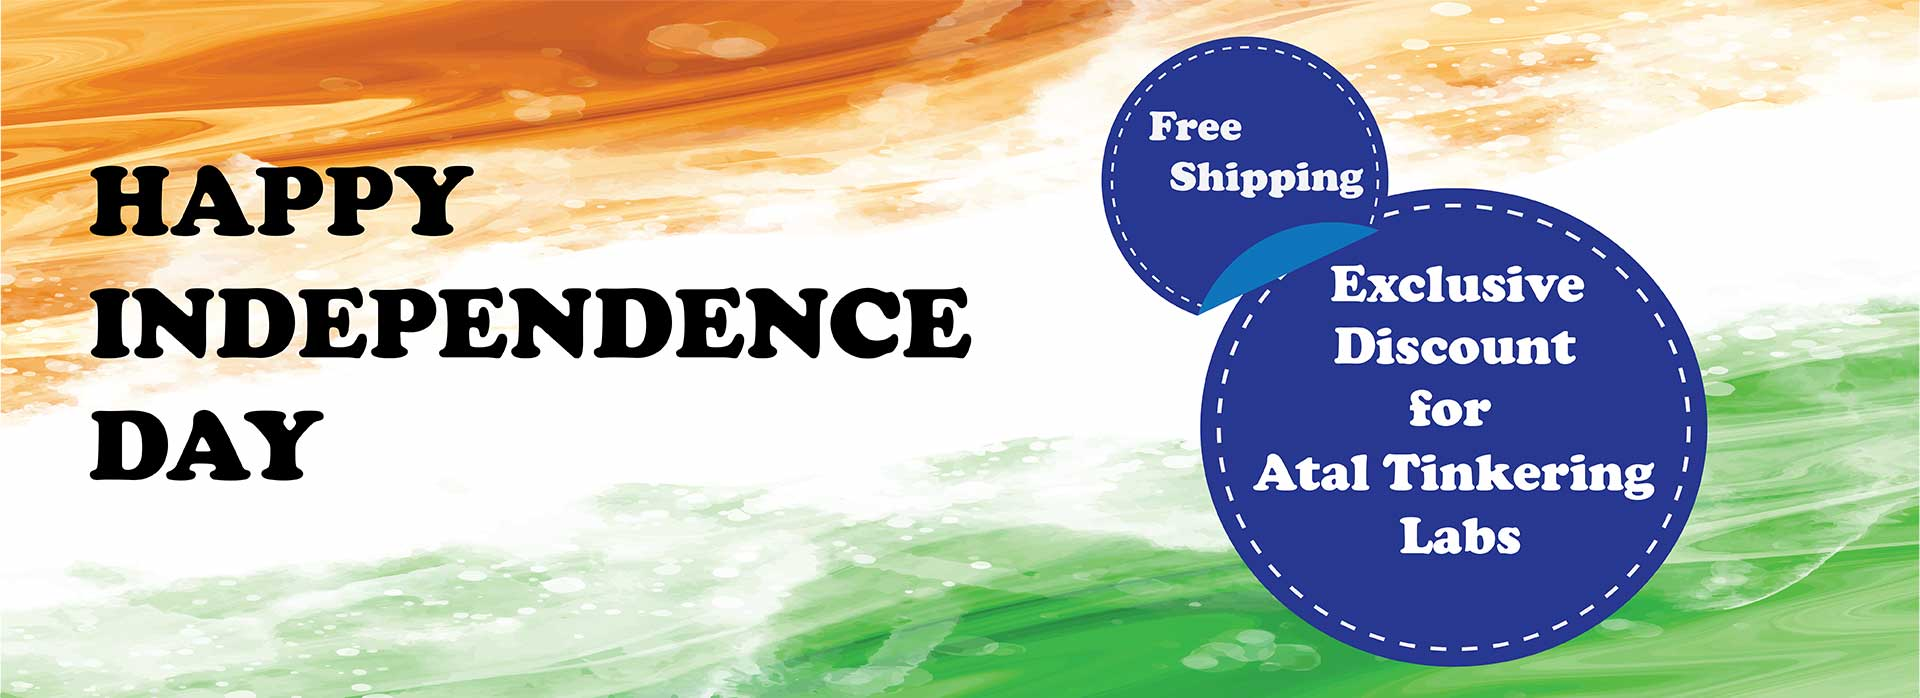 independence day sales STEMpedia